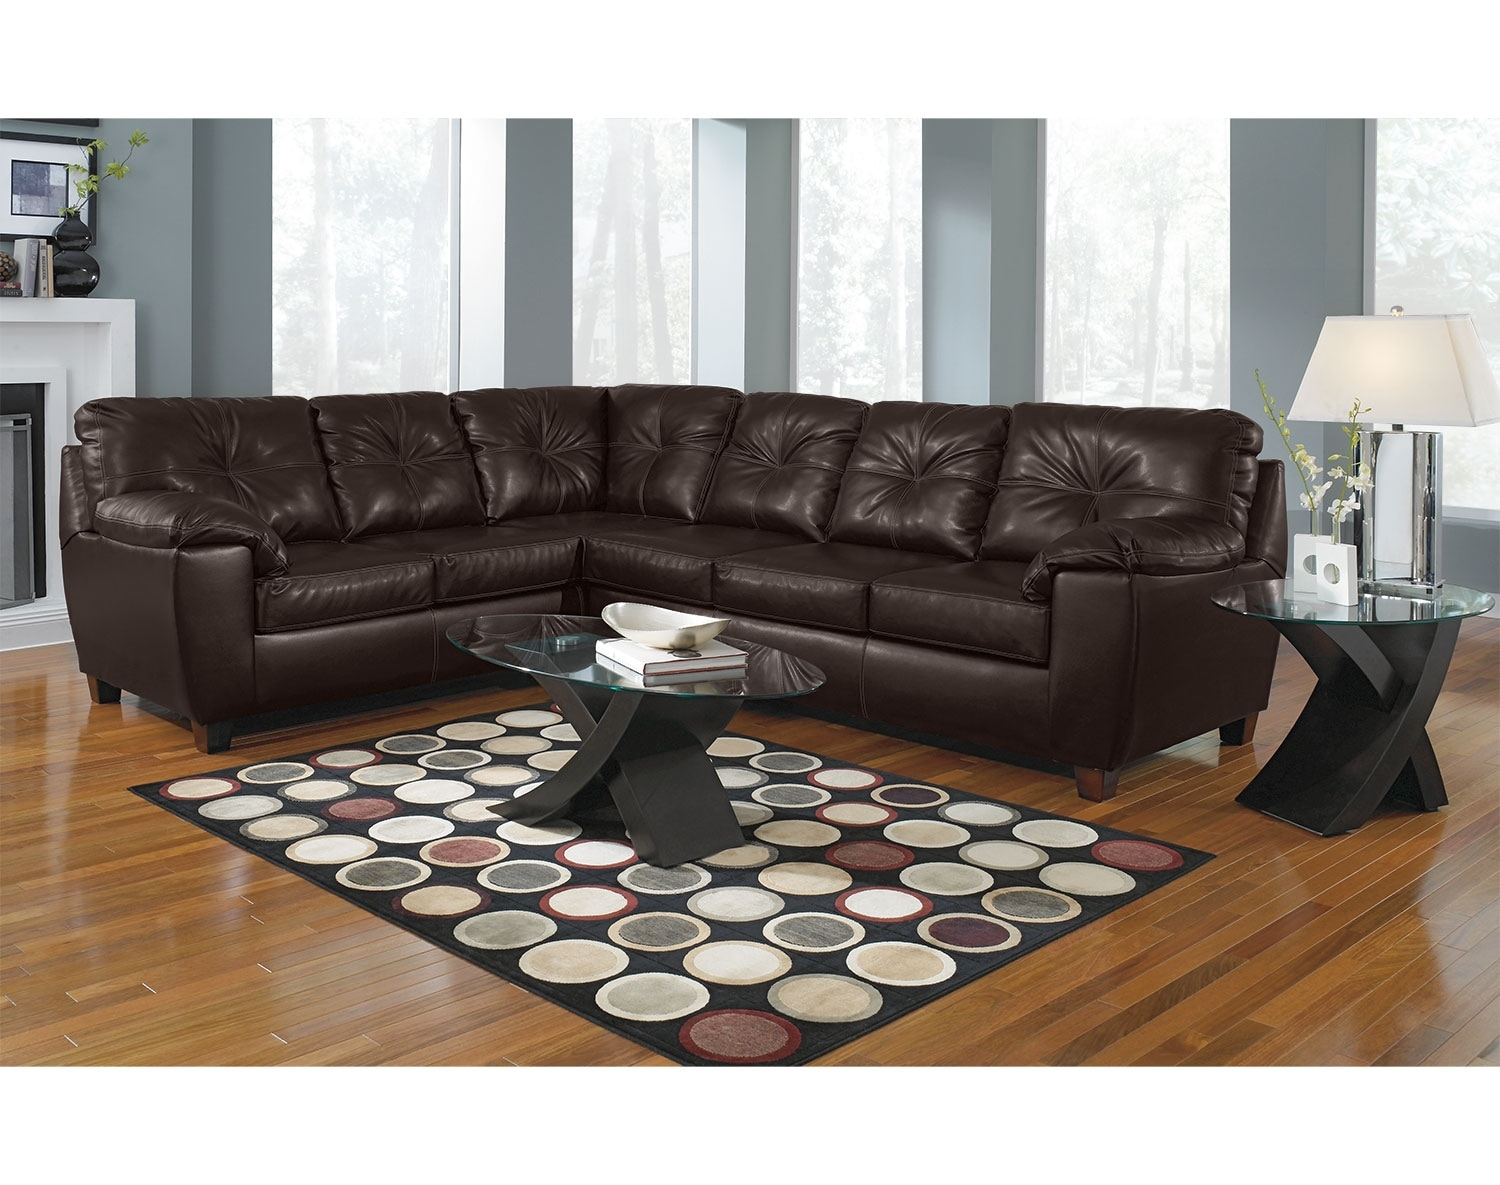 Leather sofa factory outlet engrossing modern sofas los angeles tags sofa thesofa Home furniture outlet cerritos